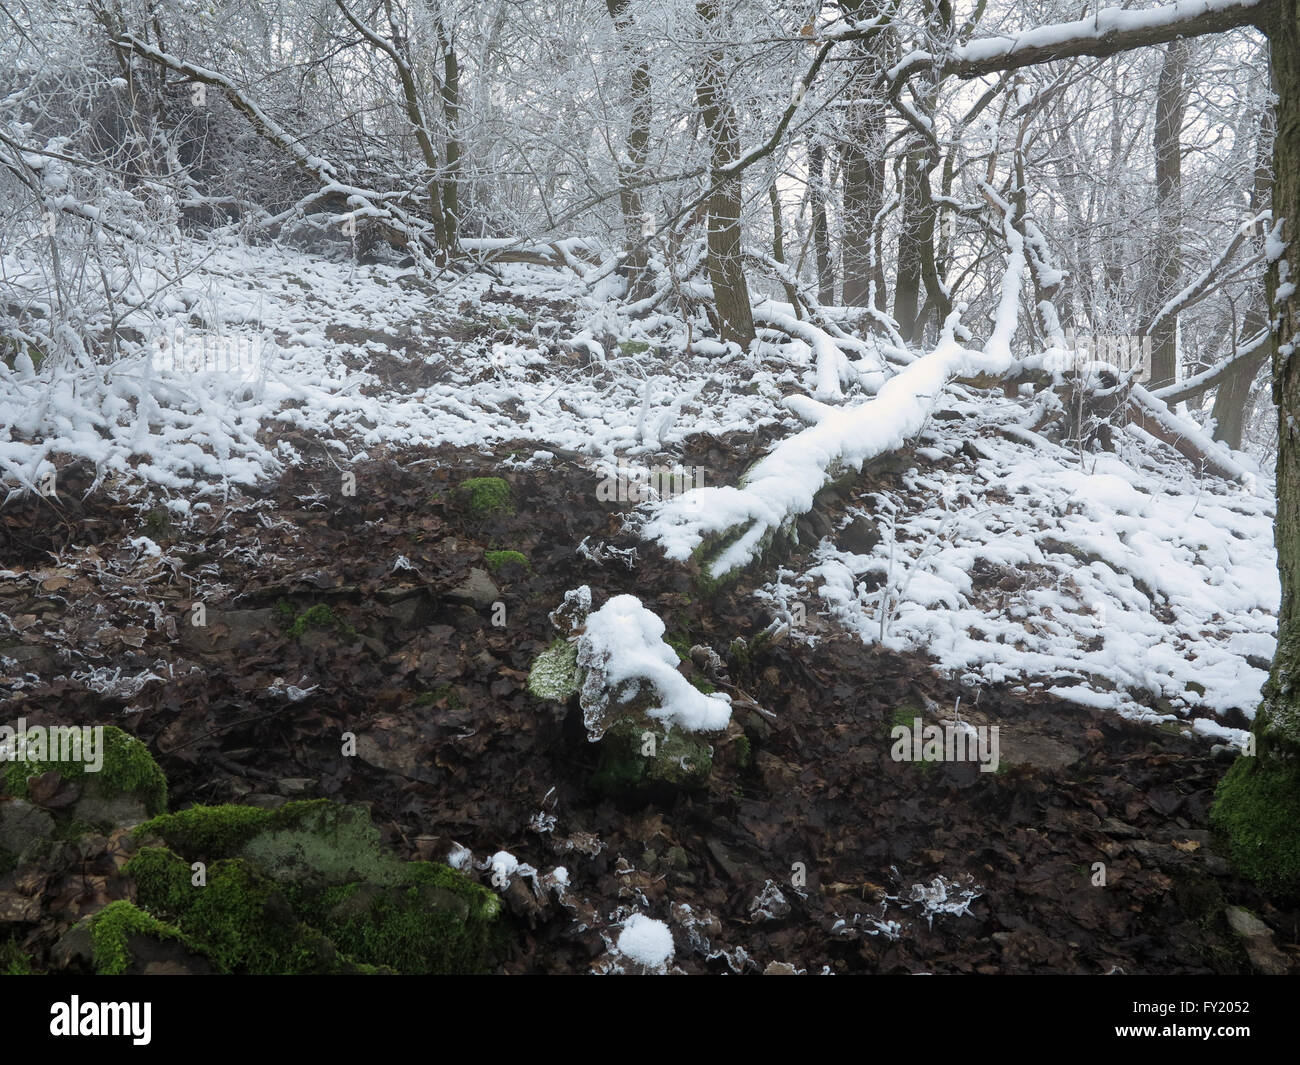 Boreč hill - natural interest in the Czech Cental Mountains Stock Photo